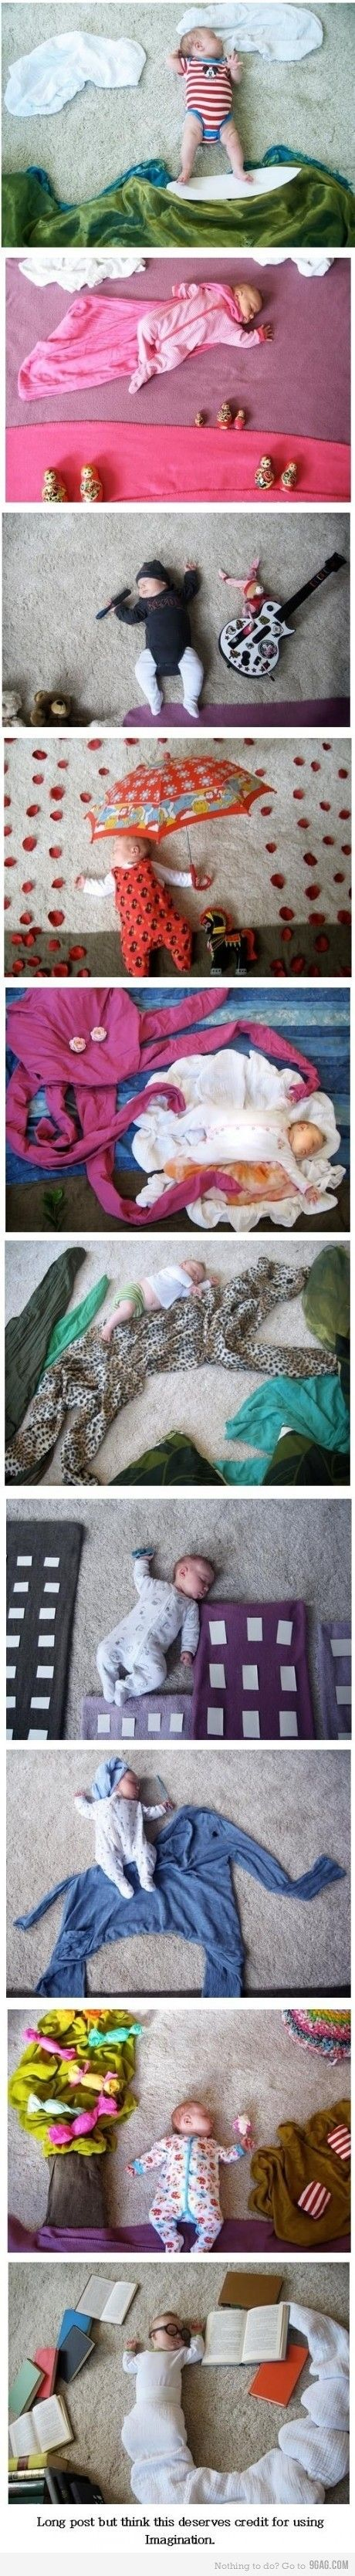 Super cute idea! Staging Baby Pictures